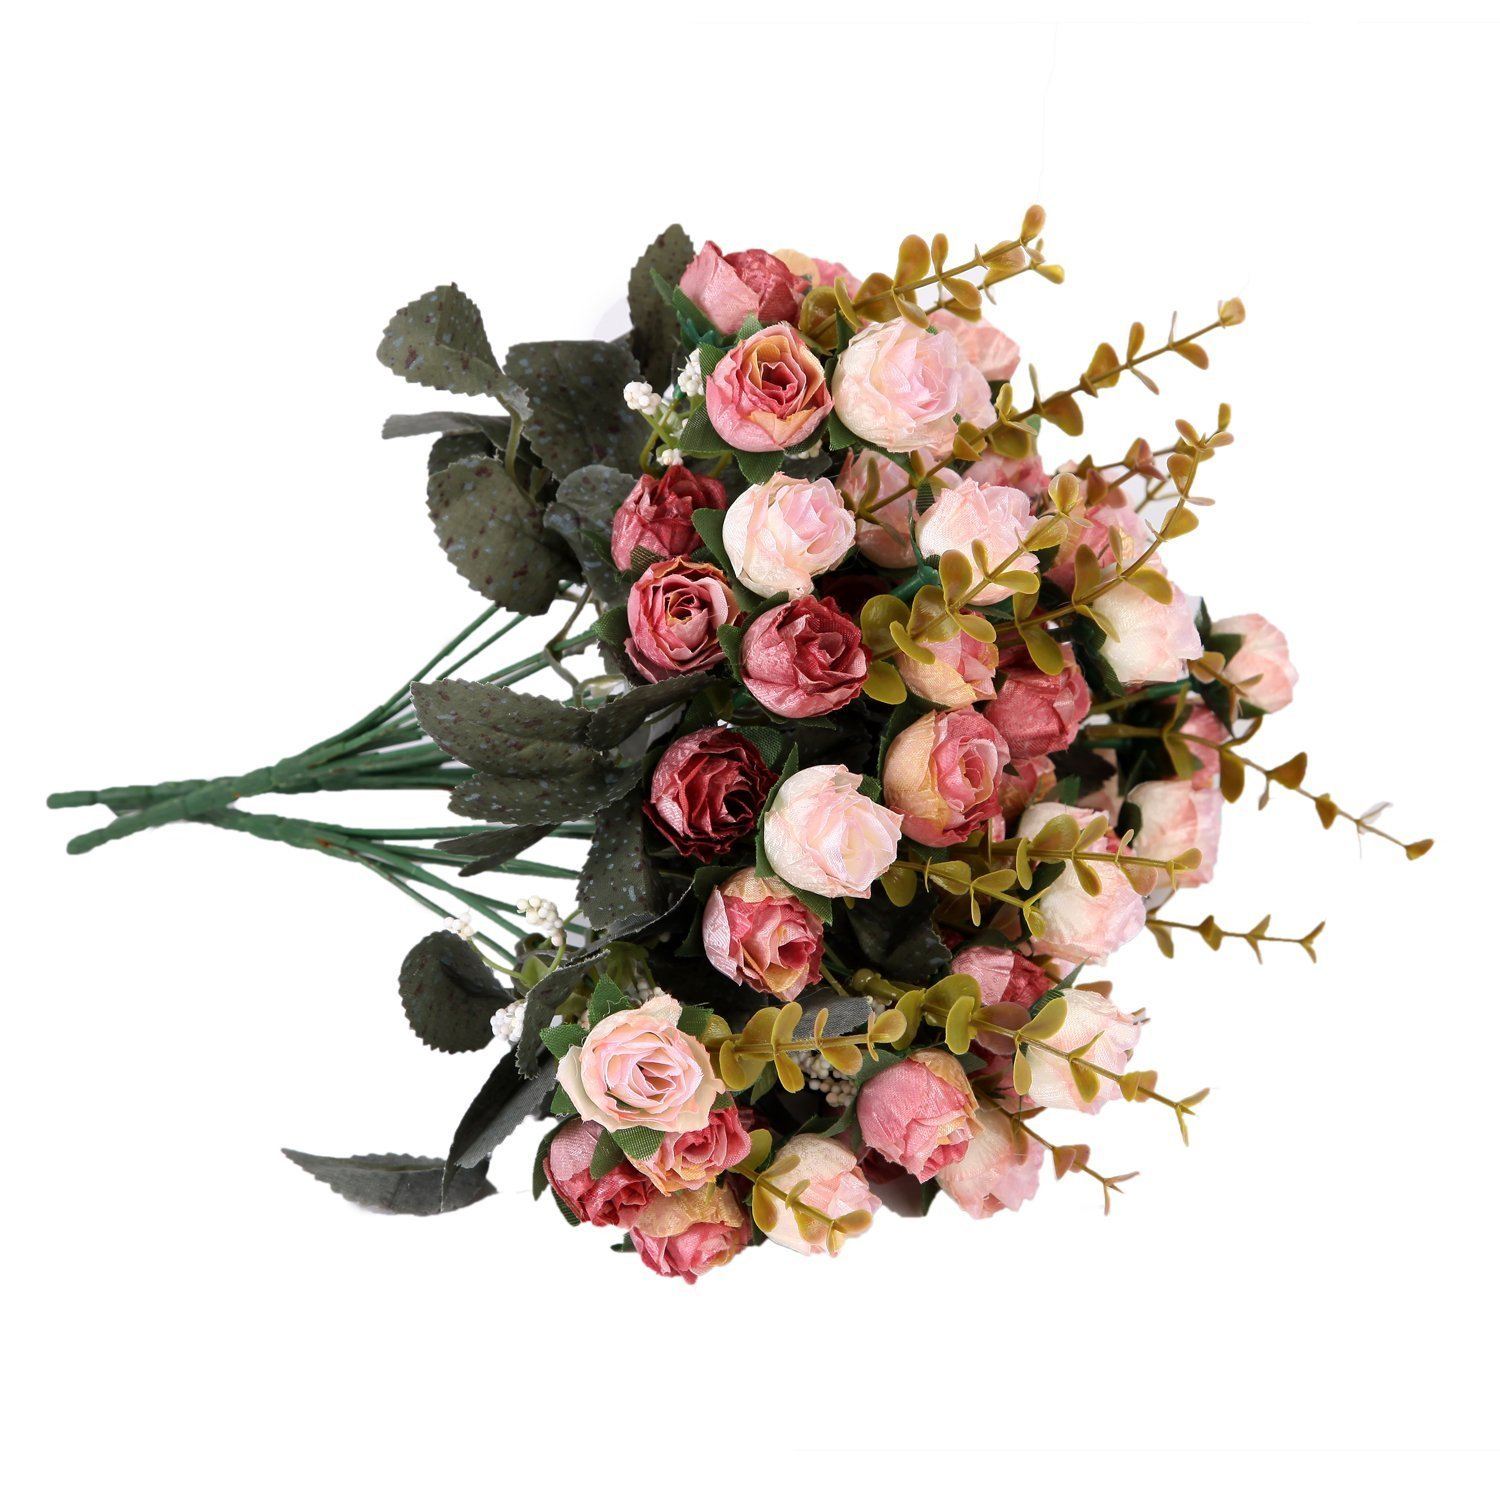 Houda rose artificial flowers bouquets 9 heads fake flowers silk houda rose artificial flowers bouquets 9 heads fake flowers silk roses bridal wedding bouquet for home izmirmasajfo